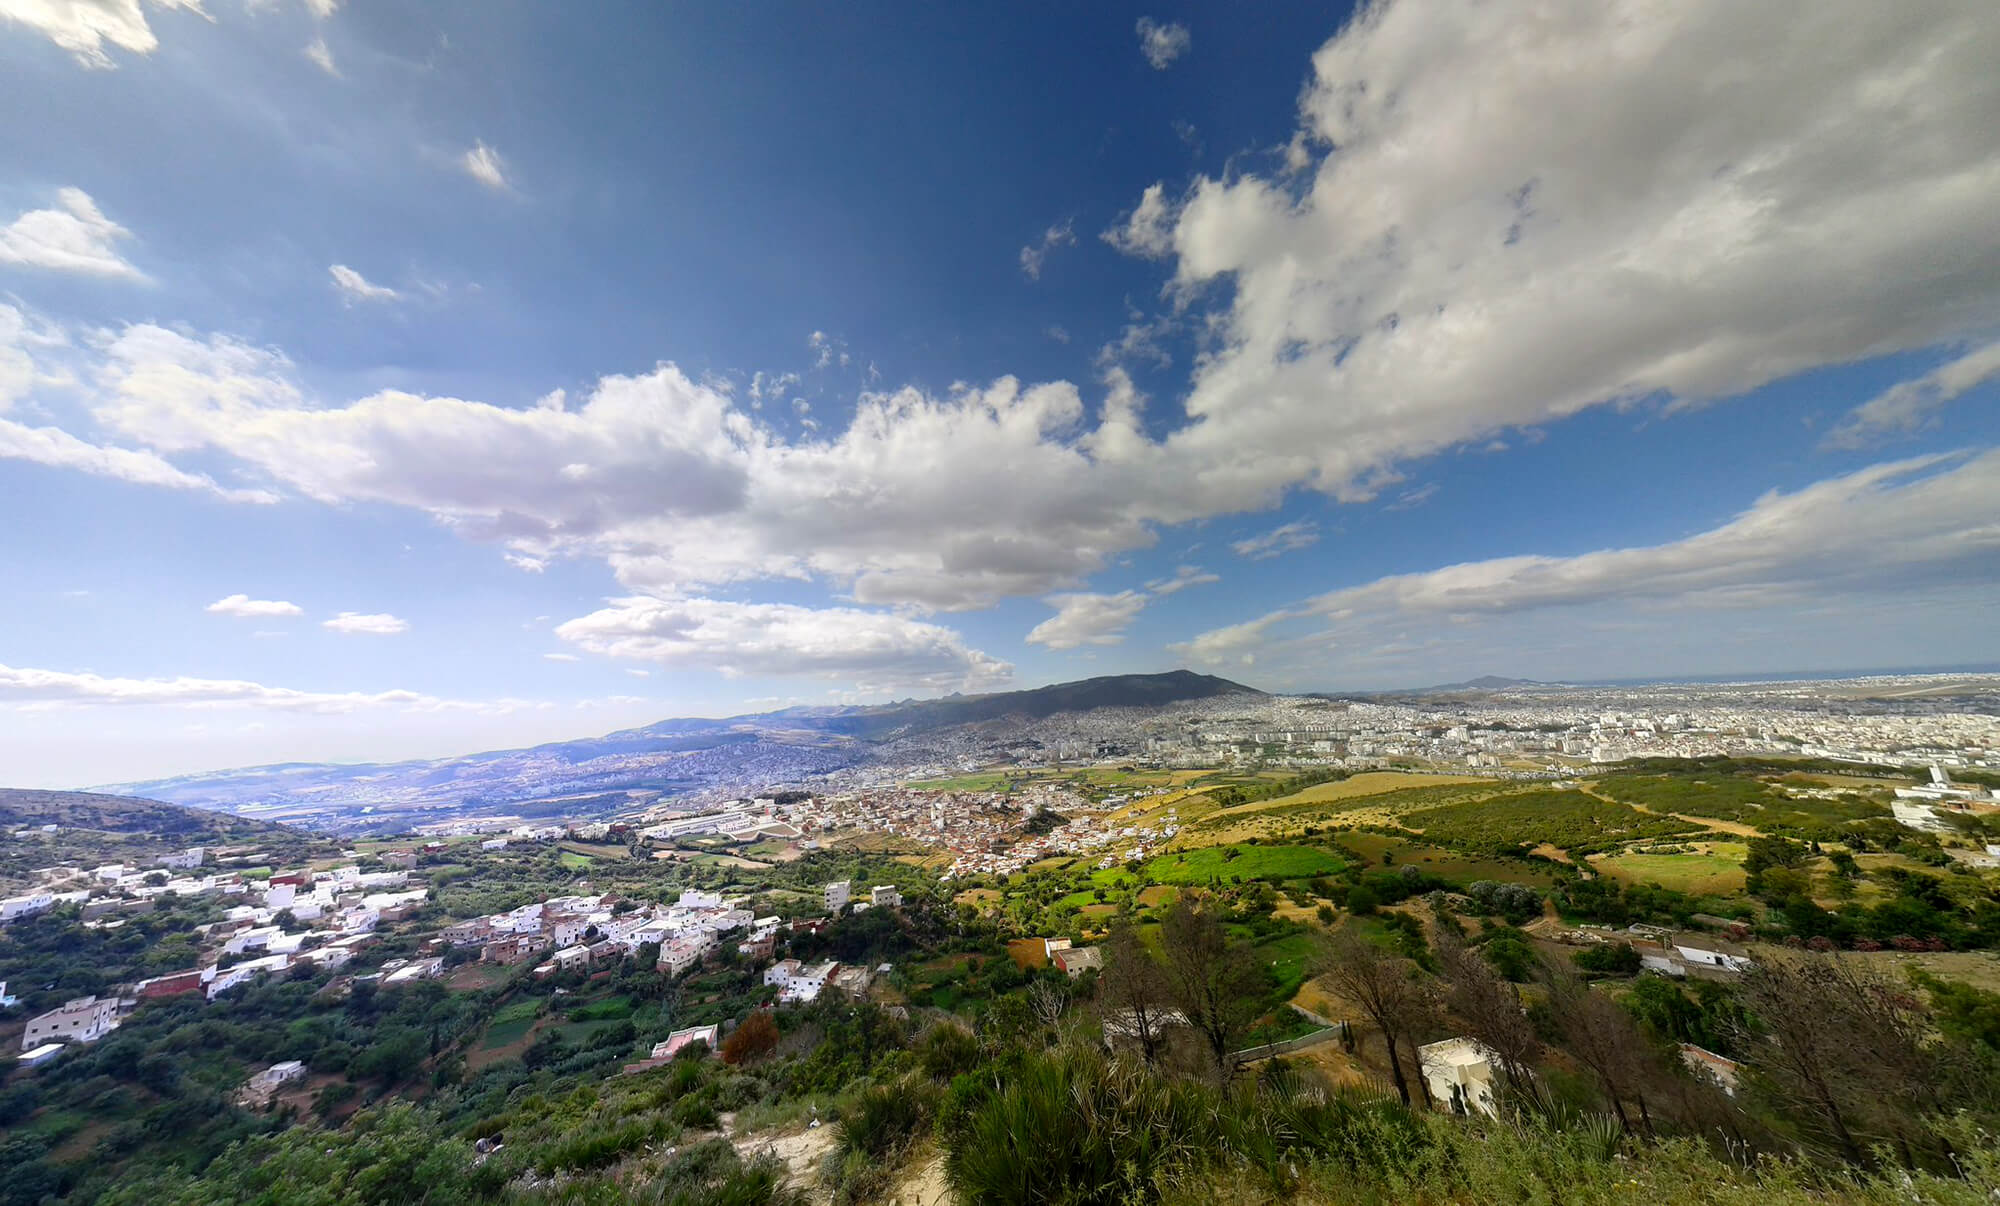 What to See and Do in Tetouan: An inspiring journey high into the mountains